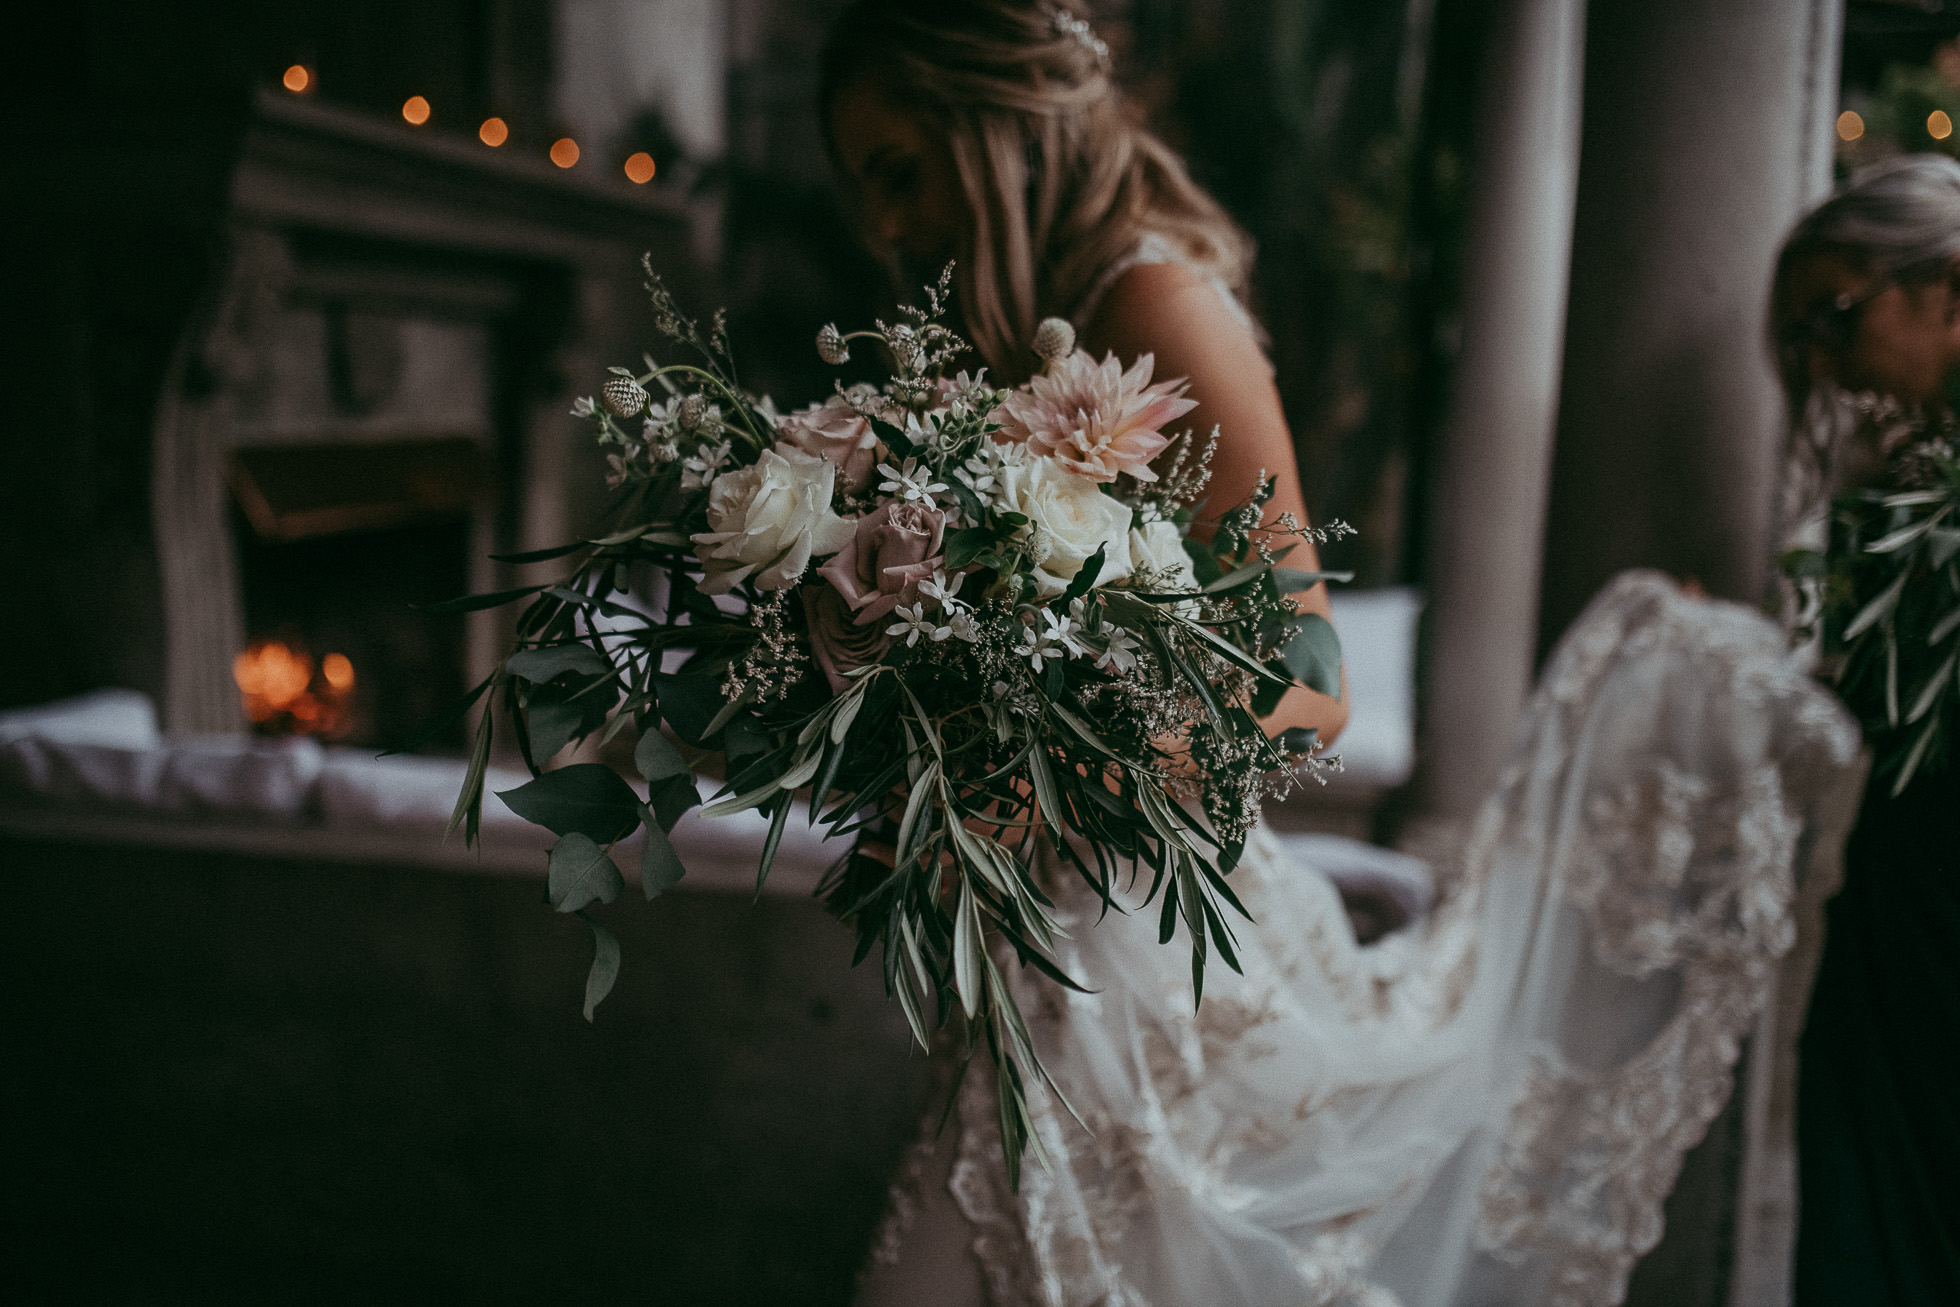 Rainy day wedding in Mantells {weddings photography in Auckland}